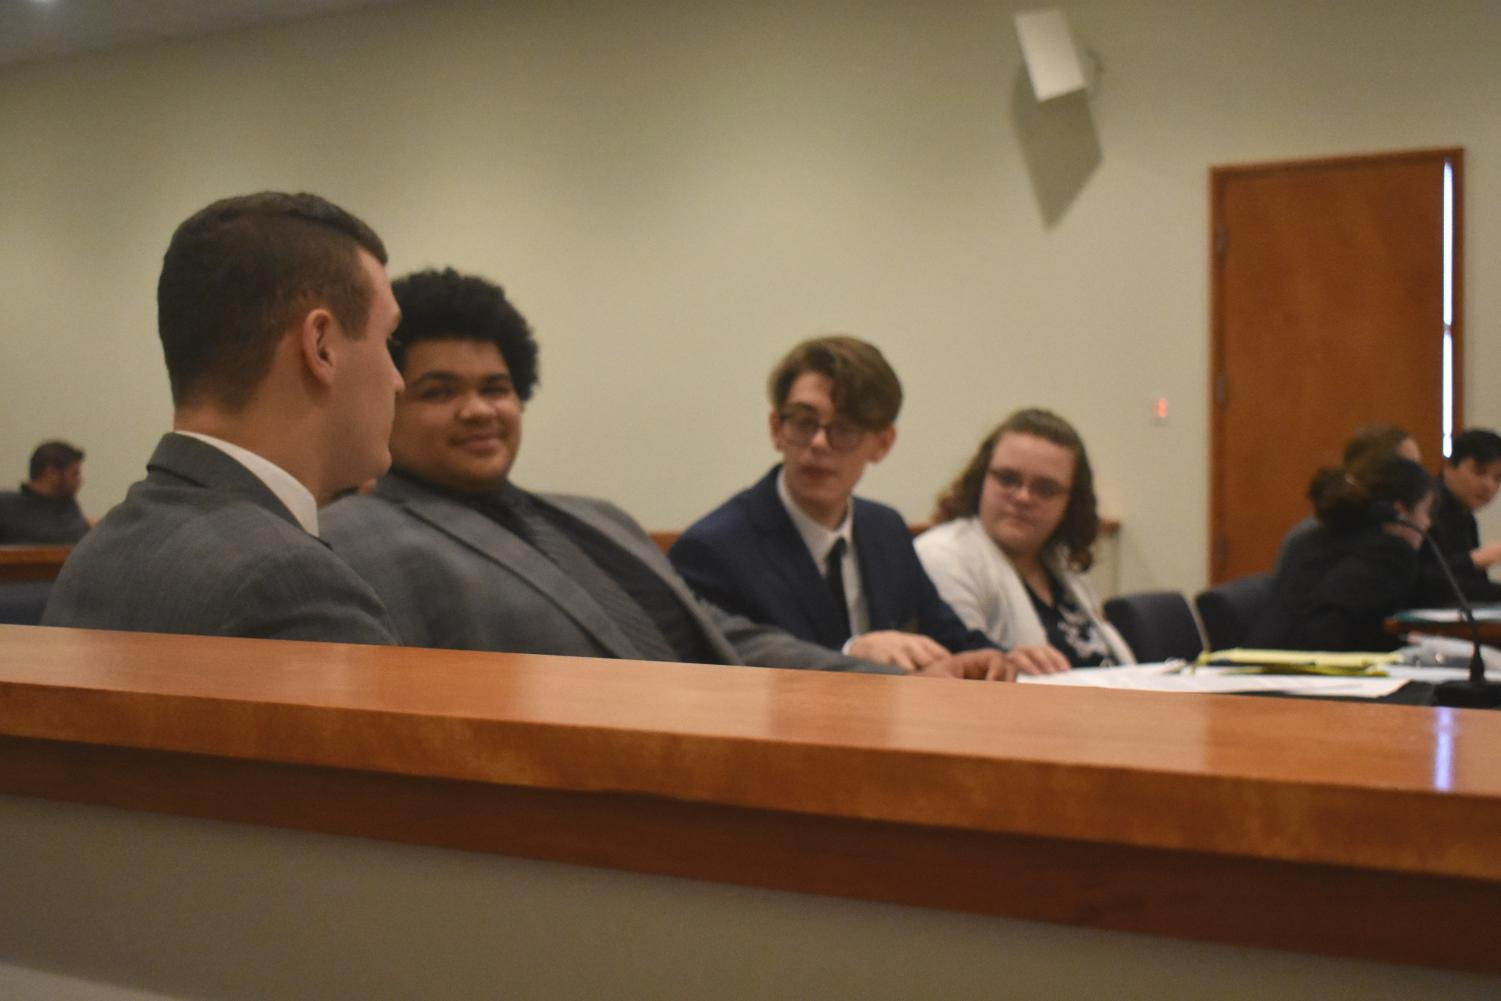 Trial Team jokes around in recess, where  the judge dismissed both teams as Prosecution (Lebanon's team) completed their witness list. Going through a week of preparation and a stressful 2 hour trial, its necessary to know when to let loose and when to act in a professional manner. During recess, both teams are able to take a break and reconvene later.